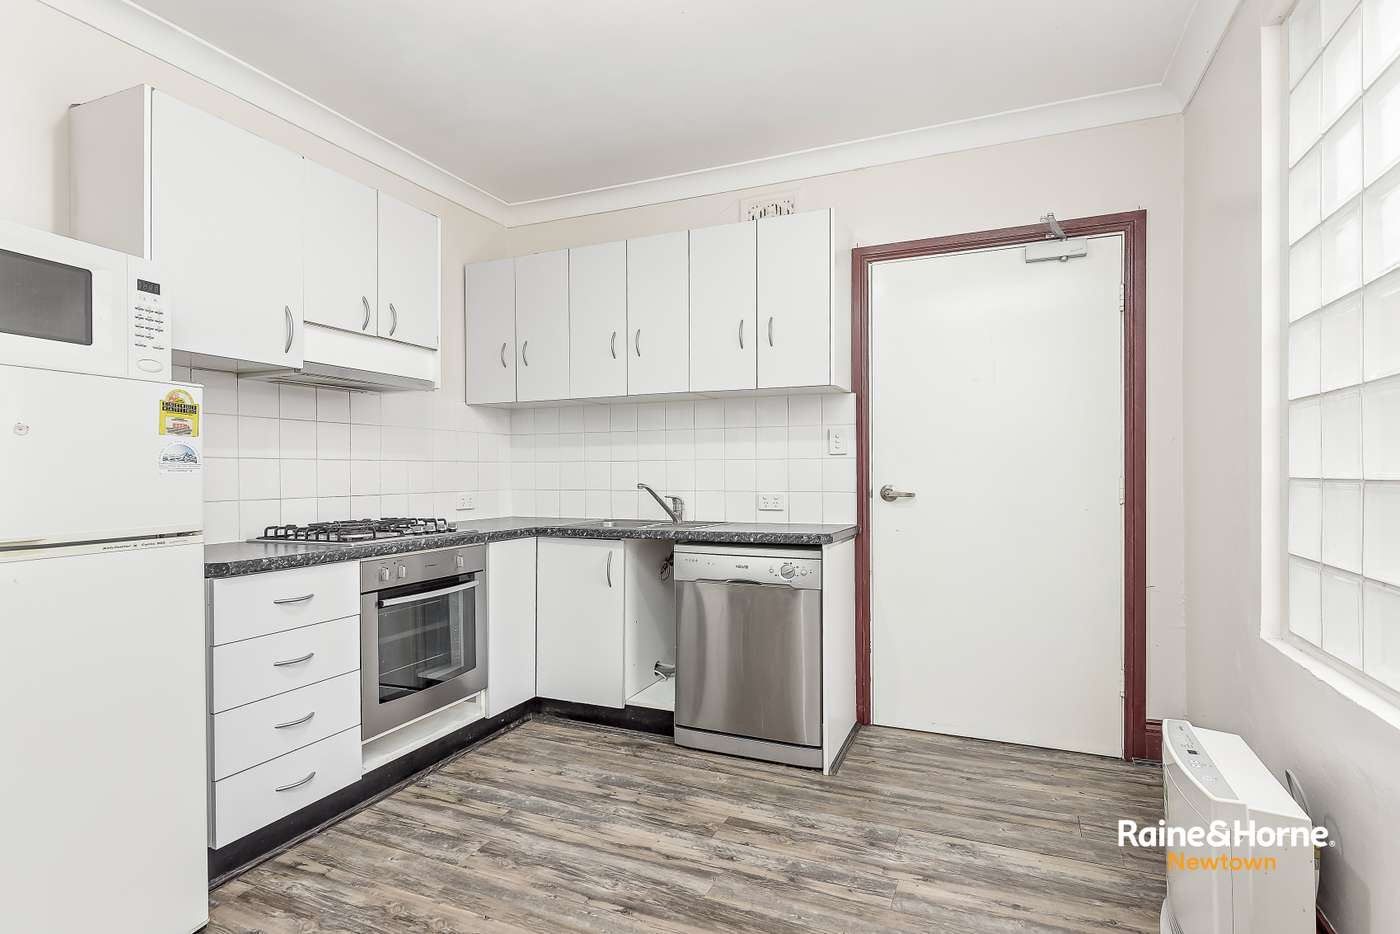 Main view of Homely apartment listing, 1/66 Enmore Road, Newtown NSW 2042